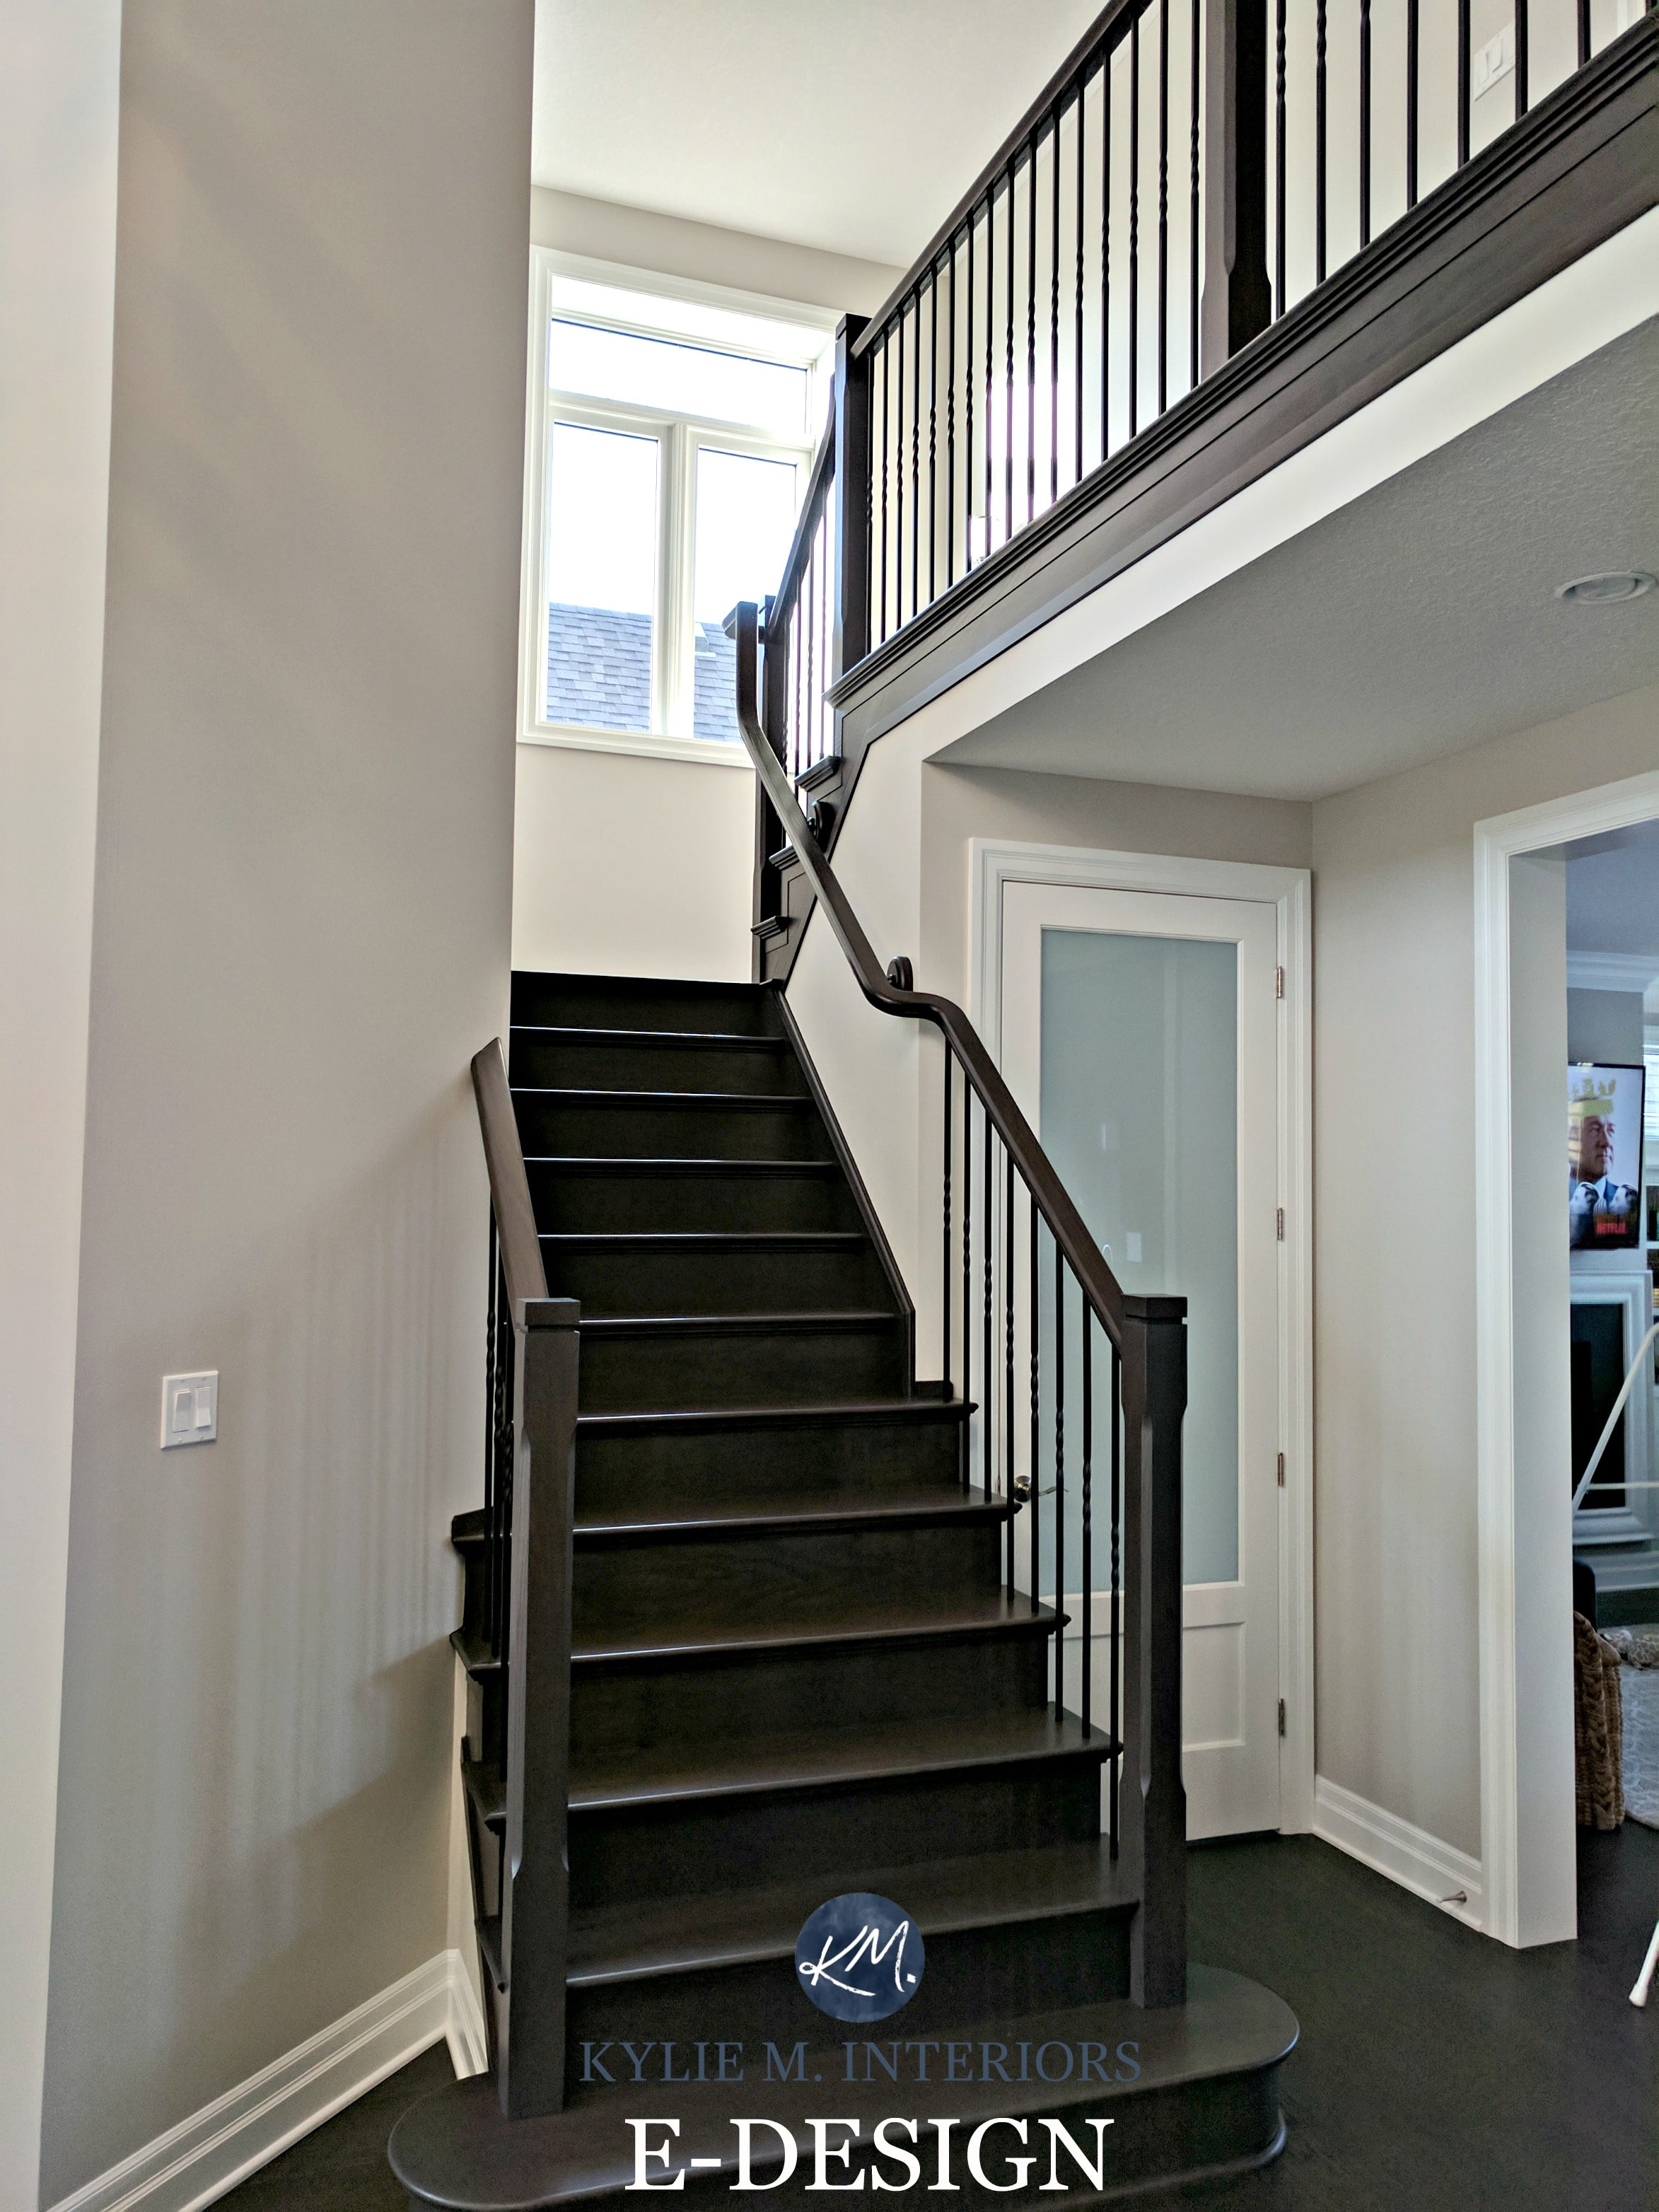 Benjamin Moore Collingwood In A Staircase With Dark Wood Stair Treads, Black  Handrail. Kylie M INteriors E Design And Online Color Consulting Blog